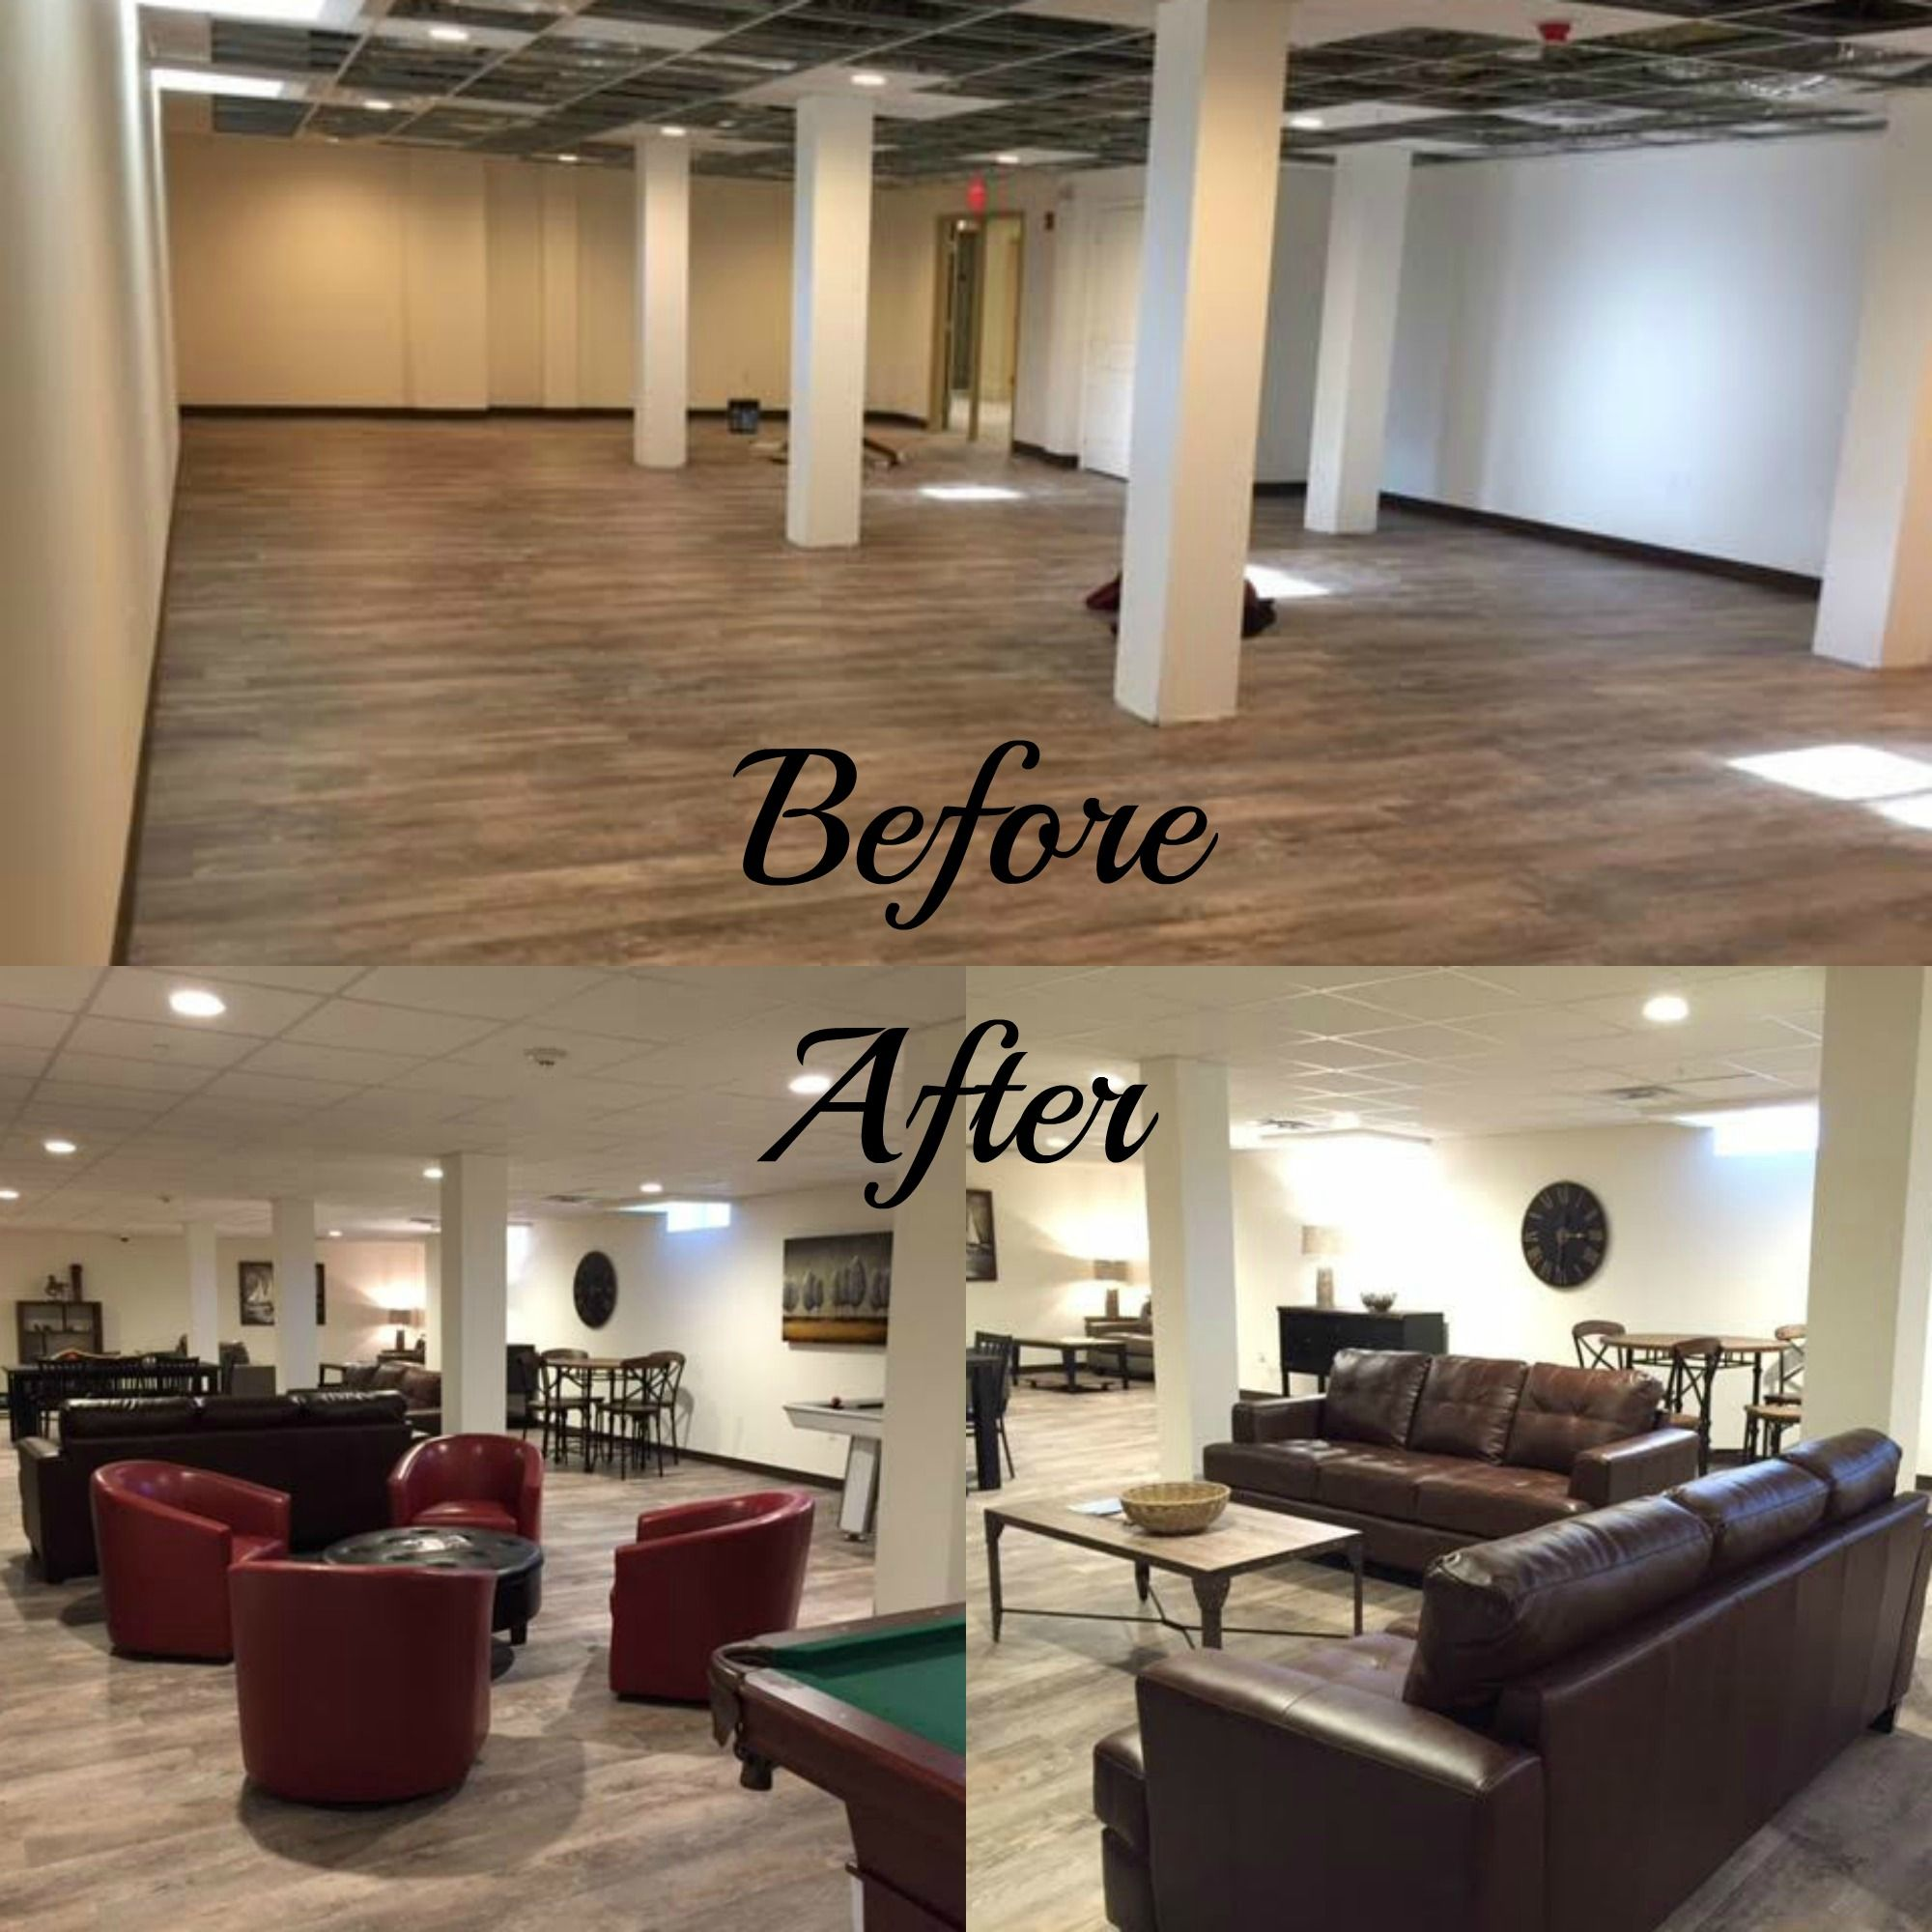 Check Out The Community Room At New Residences Lincoln Park In Dartmouth Before And After Pictures Furnished By Regal House Furniture